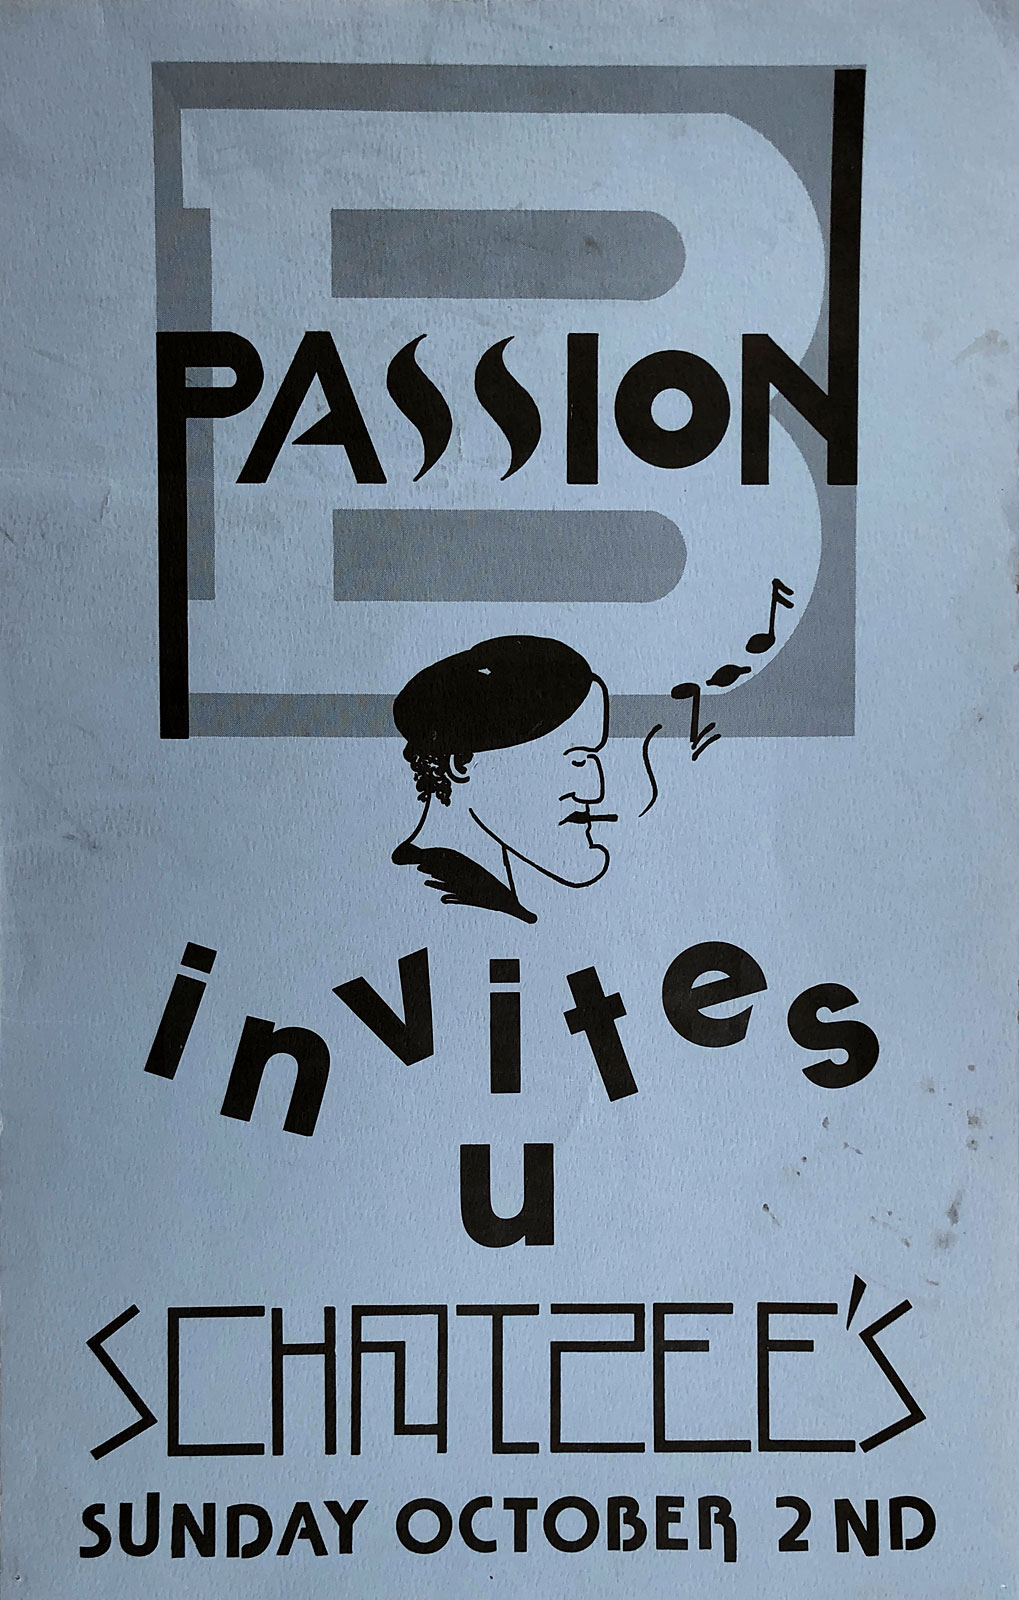 Tim Dodd poster for Passion B performance at Scorgie's in Rochester, New York 10.02.1984